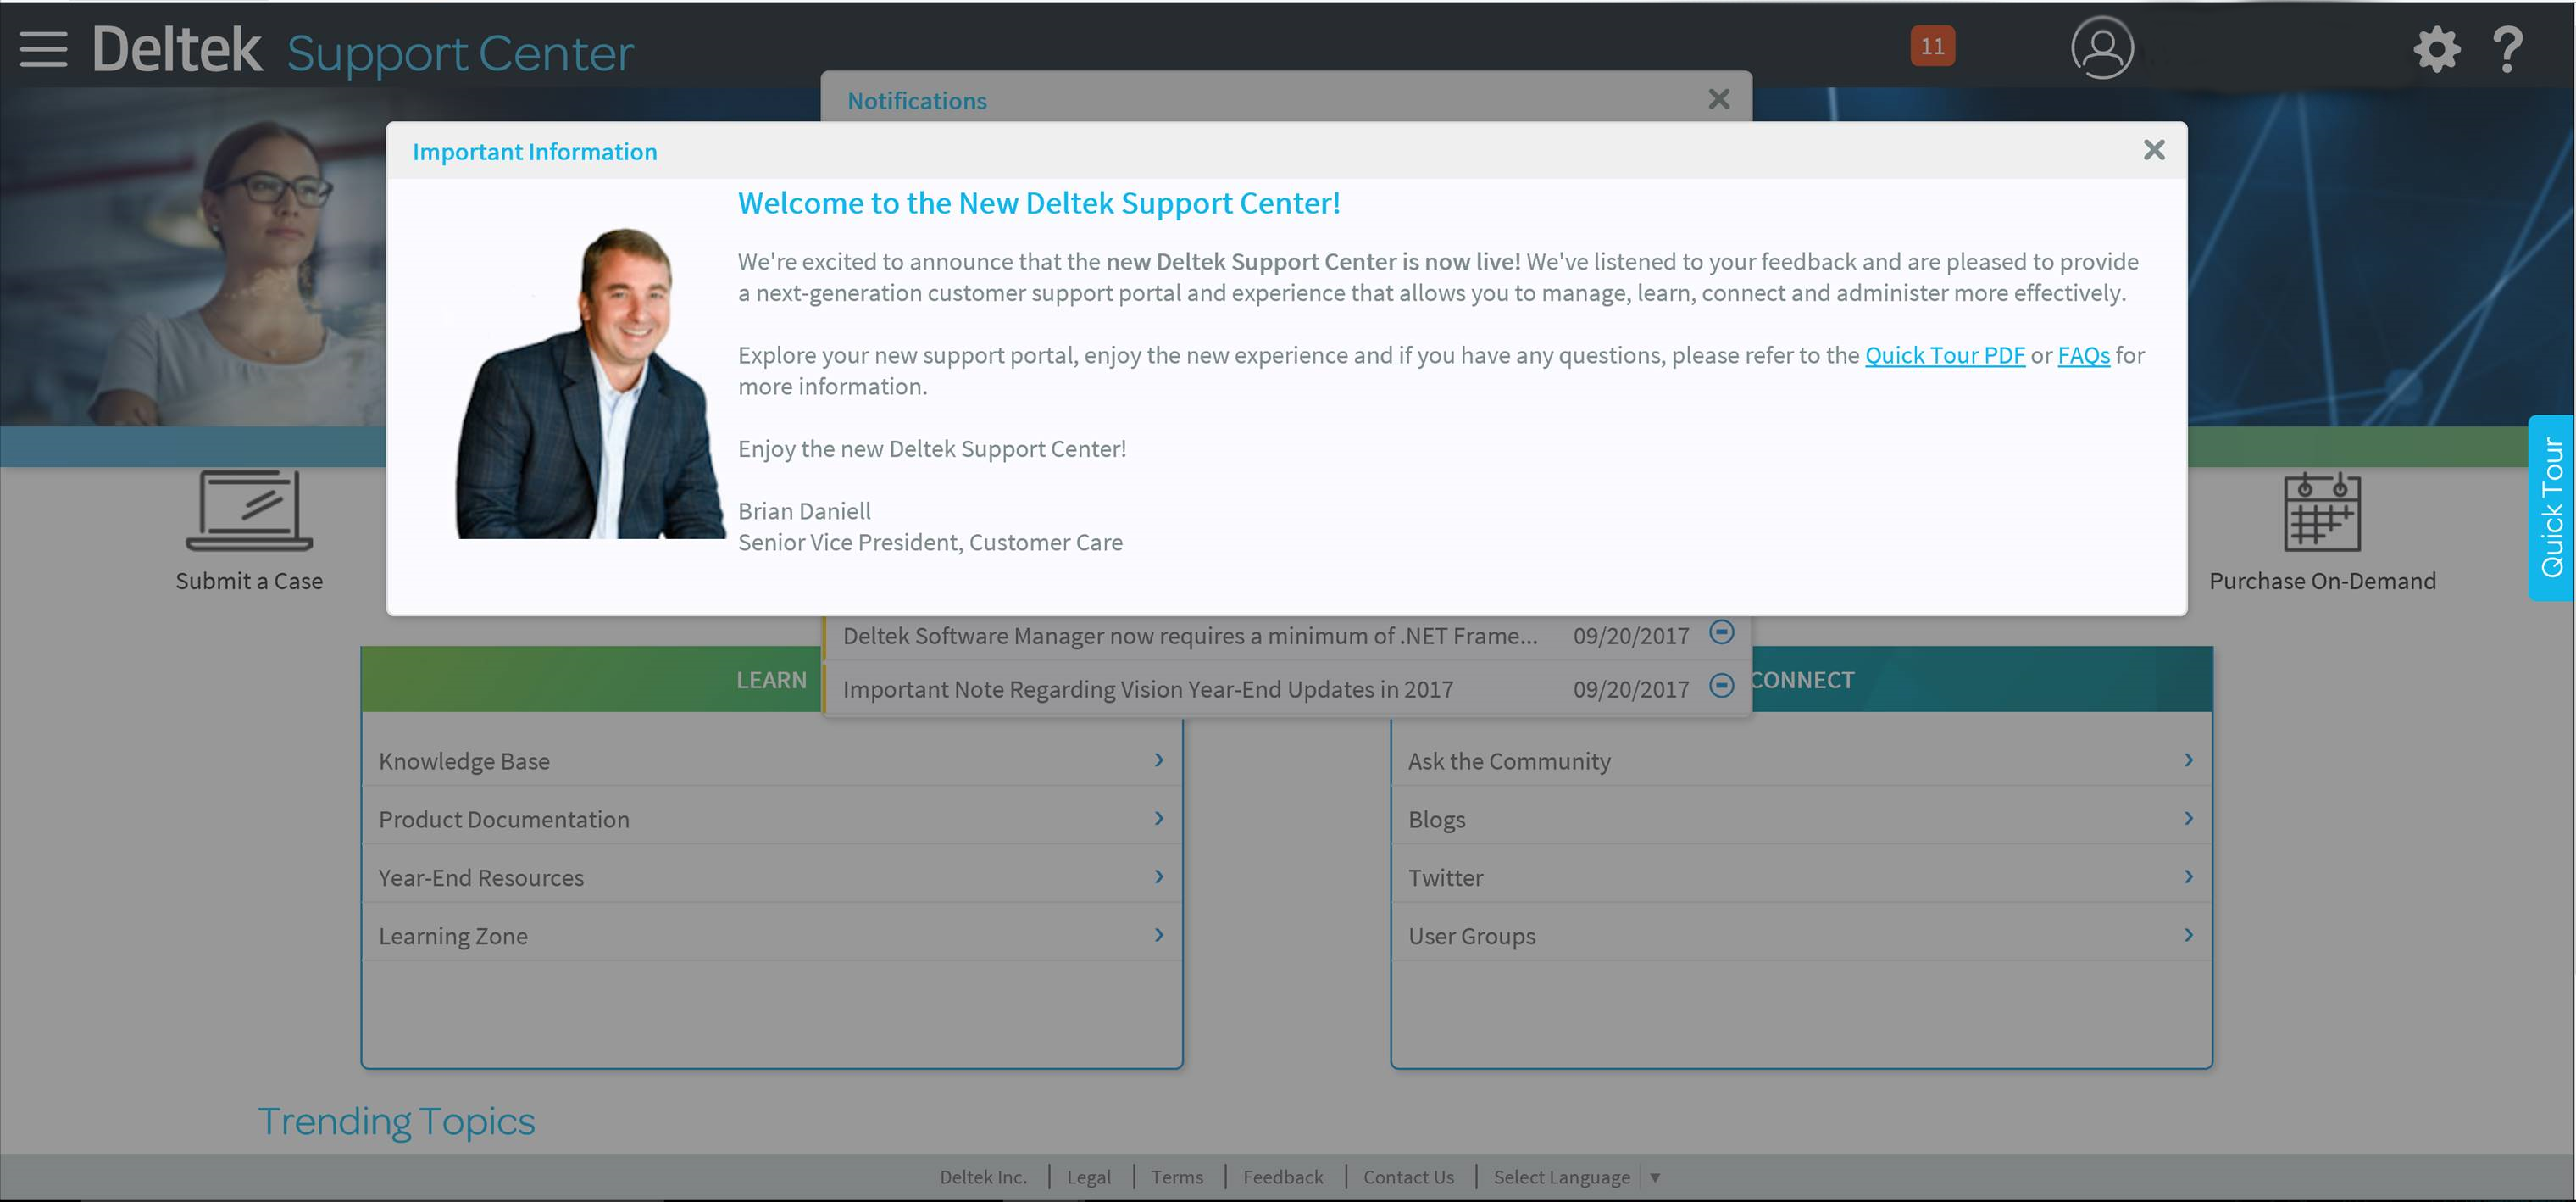 Deltek Support Center Welcome Screen